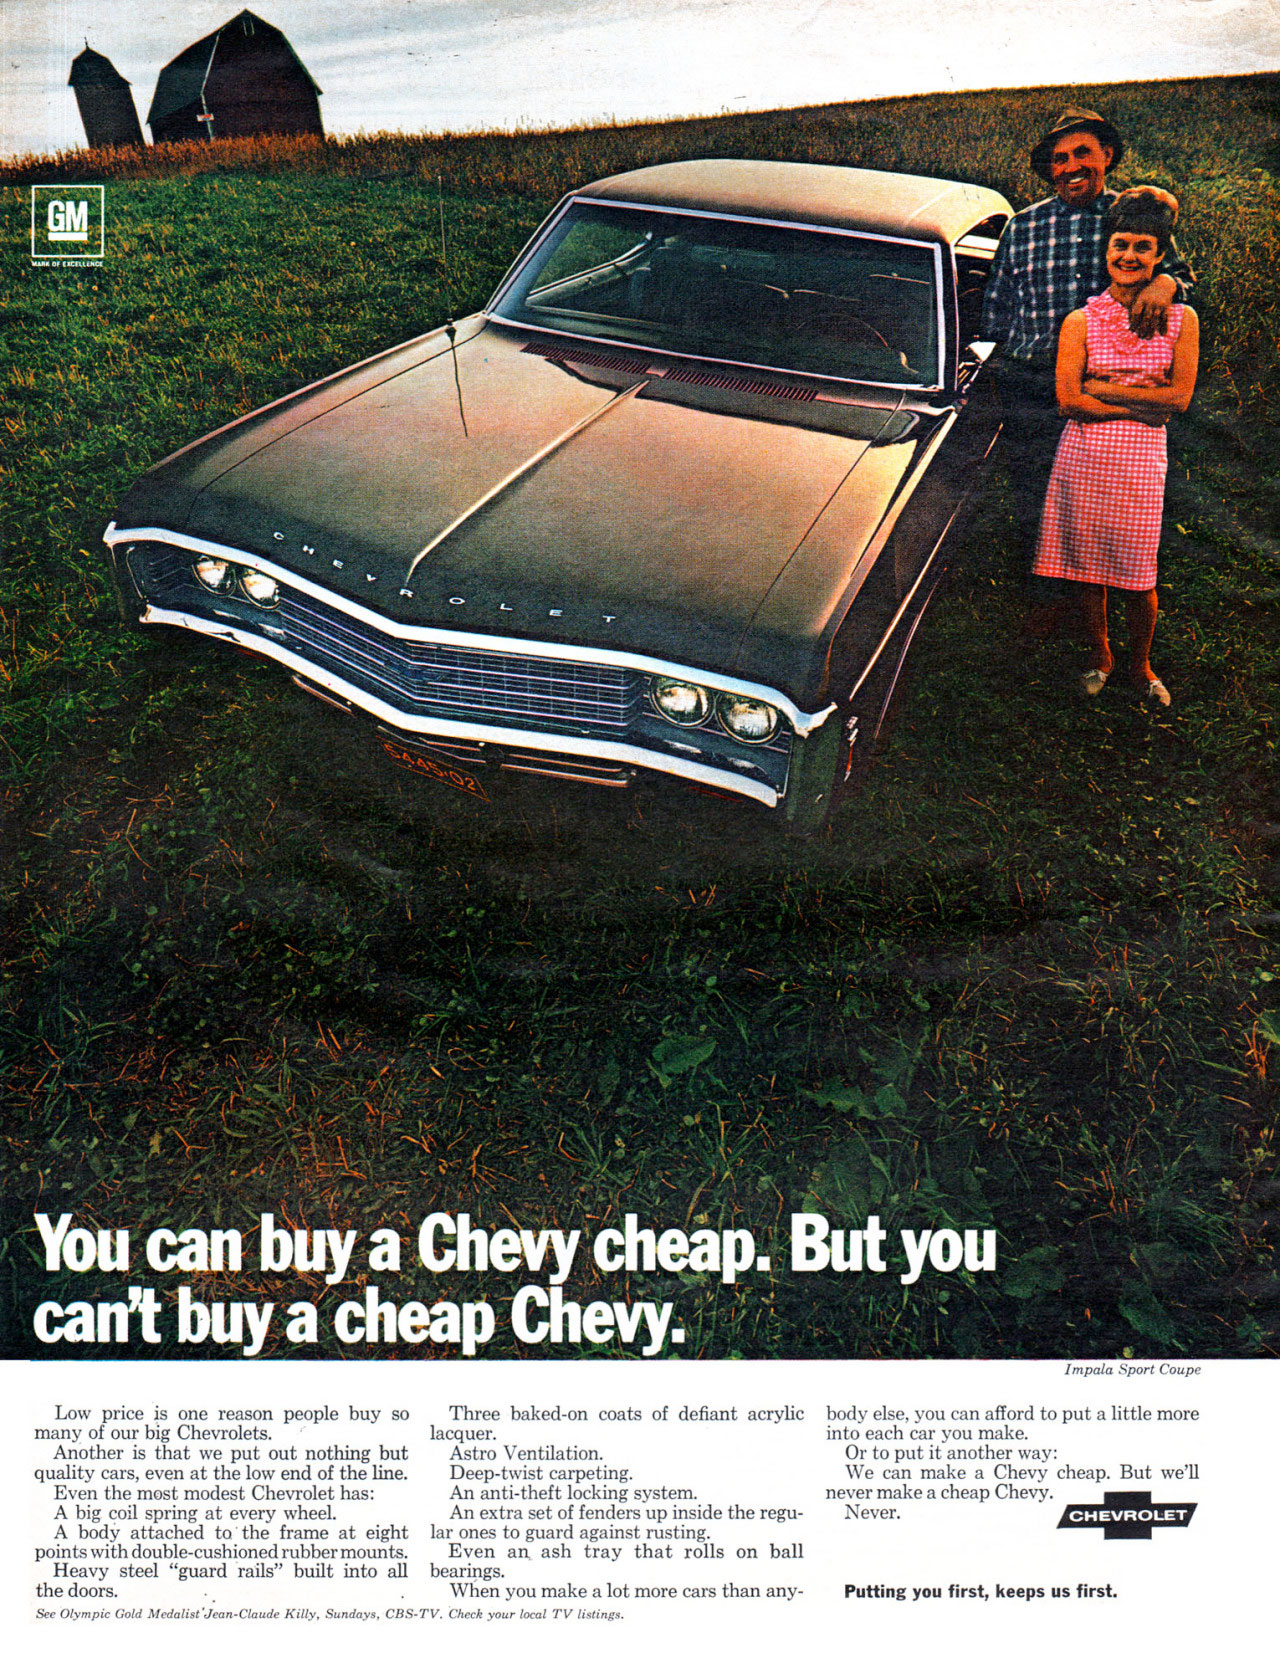 You can buy a Chevy cheap. But you can't buy a cheap Chevy. Low price is one reason people buy so many of our big Chevrolets. Another is that we put out nothing but quality cars, even at the low end of the line. Even the most modest Chevrolet has: A big coil spring at every wheel. A body attached to the frame at eight points with double-cushioned rubber mounts. Heavy steel ''guard rails'' built into all the doors. See Olympic Gold Medalist Jean-Claude Kitty, Sundays, CBS- Three baked-on coats of defiant acrylic lacquer. Astro Ventilation. Deep-twist carpeting. An anti-theft locking system. An extra set of fenders up inside the regu-lar ones to guard against rusting. Even an ash tray that rolls on ball bearings. When you make a lot more cars than any-TV. Check your local TV listings.  Impala Sport Coupe   body else, you can afford to put a little more into each car you make. Or to put it another way: We can make a Chevy cheap. But we'll never make a cheap Chevy. Never.  Putting you first, keeps us first.